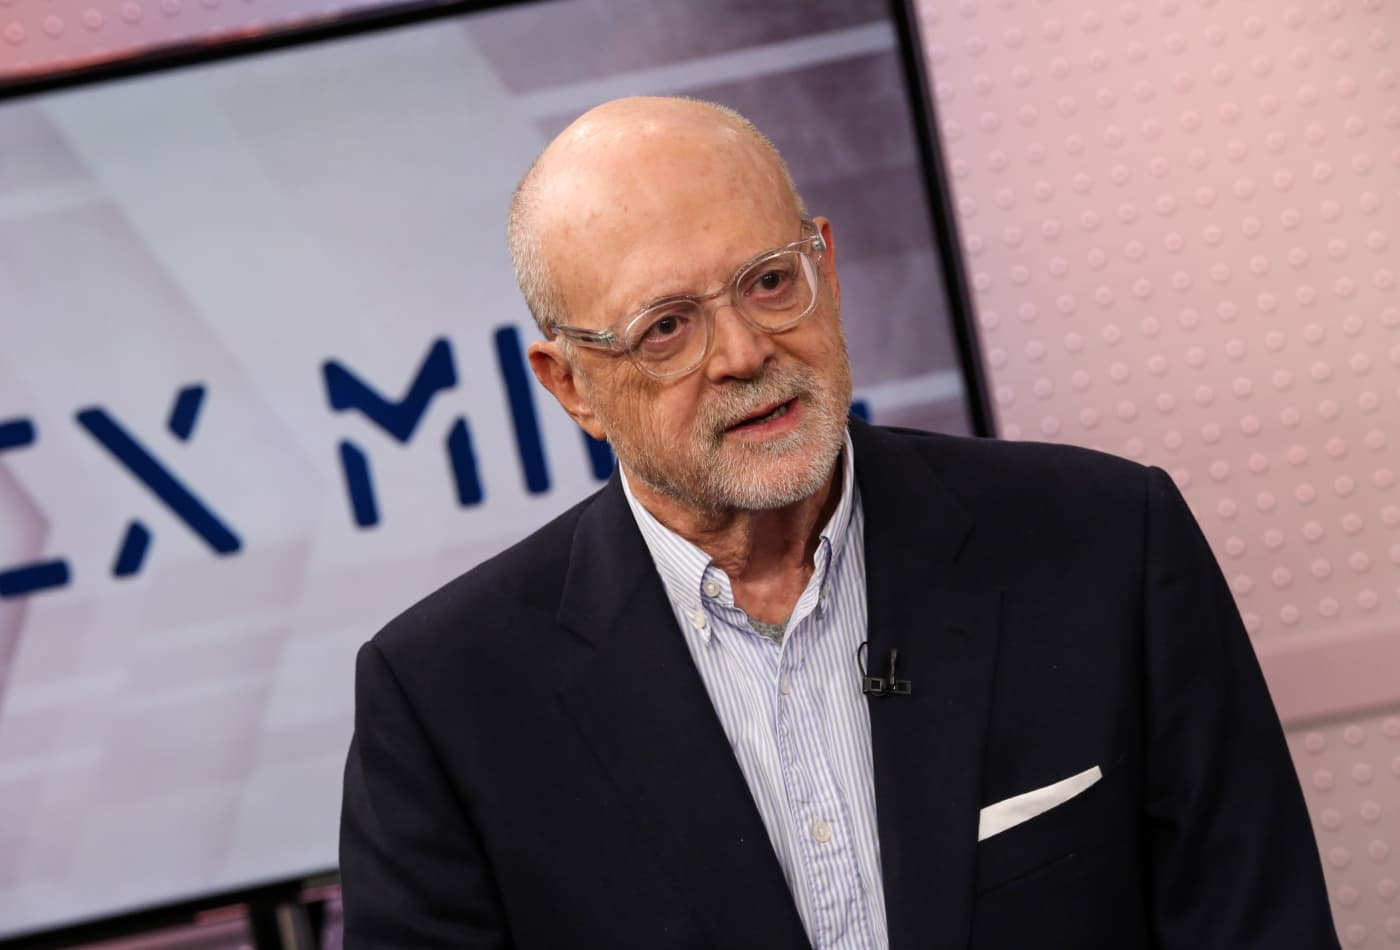 Retail giant Mickey Drexler on how the industry could transition post-pandemic